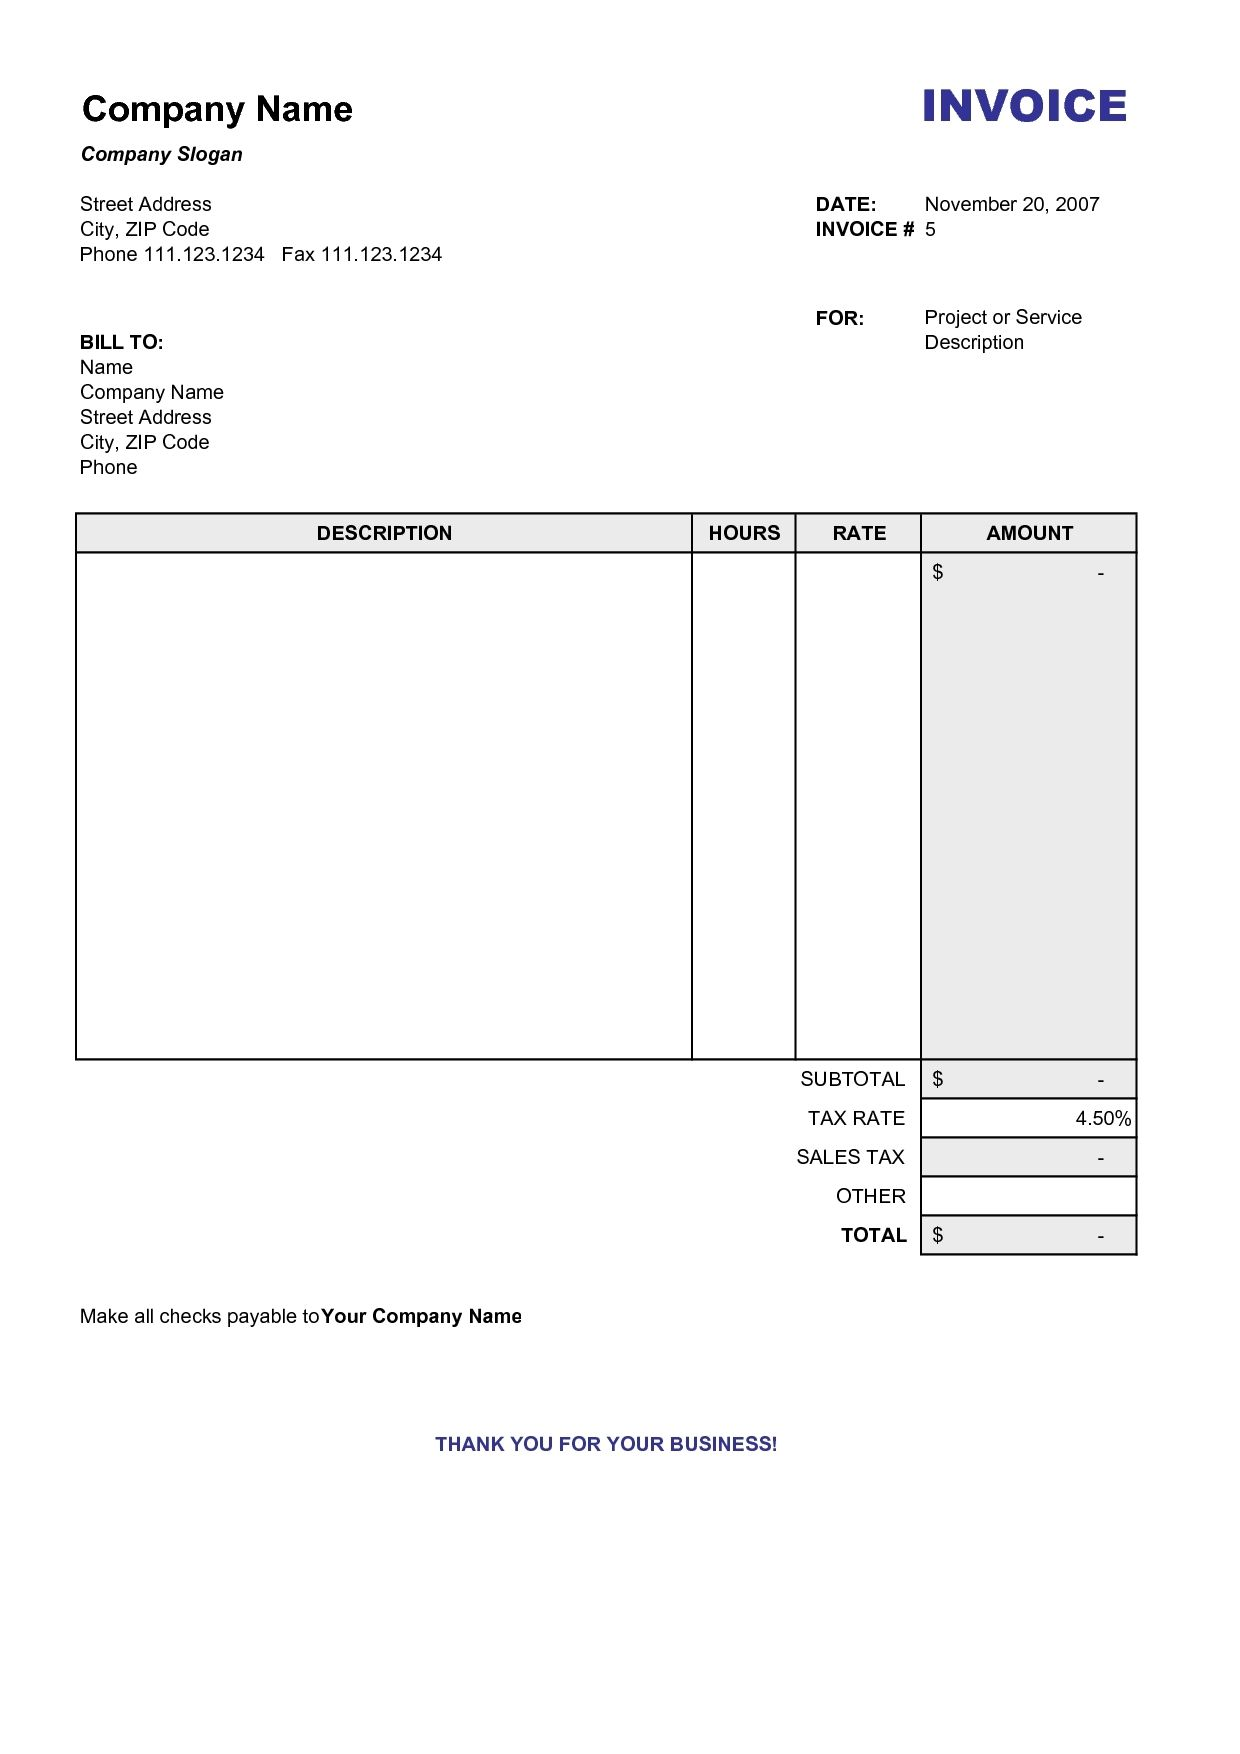 Copy Of A Blank Invoice Invoice Template Free Copy Of Blank - Free blank invoices printable for service business